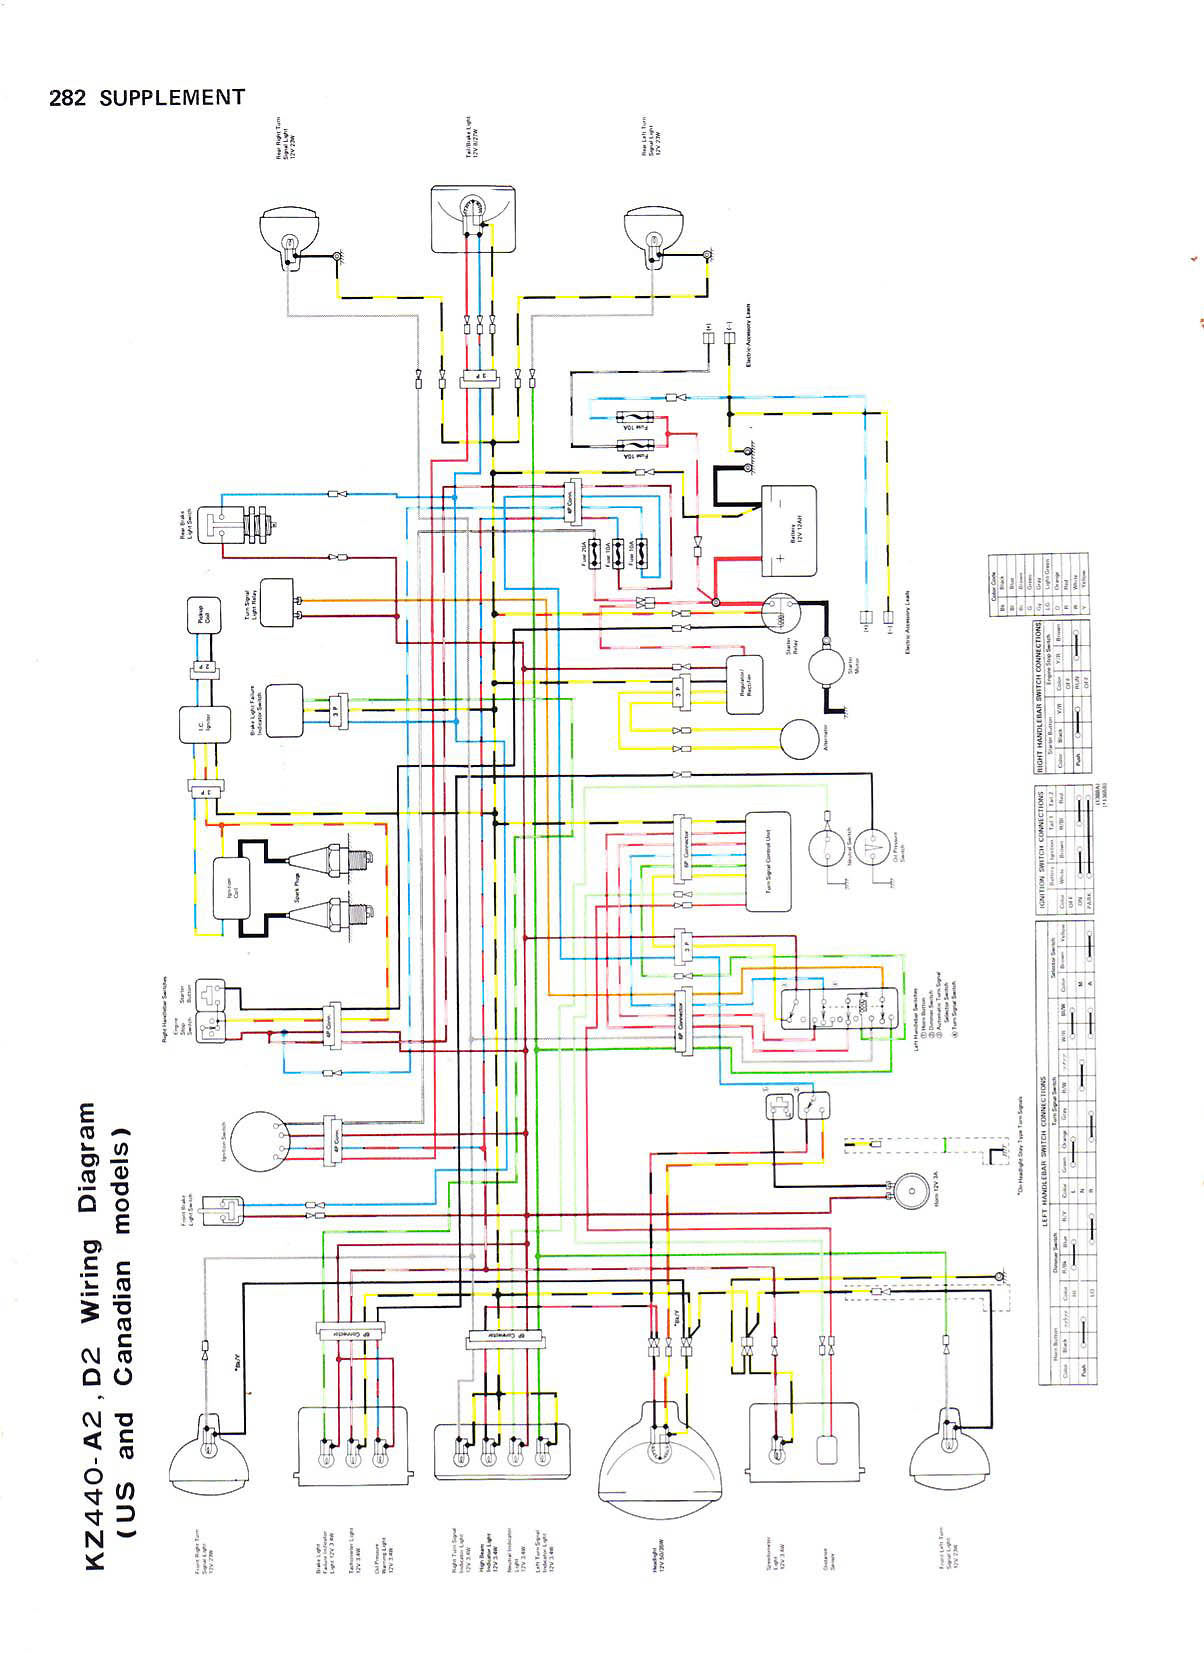 Kawasaki KZ 440 %2780 a %2782 Service Manual_Page_279 index of kz440 wiring diagrams kz440 wiring harness at honlapkeszites.co